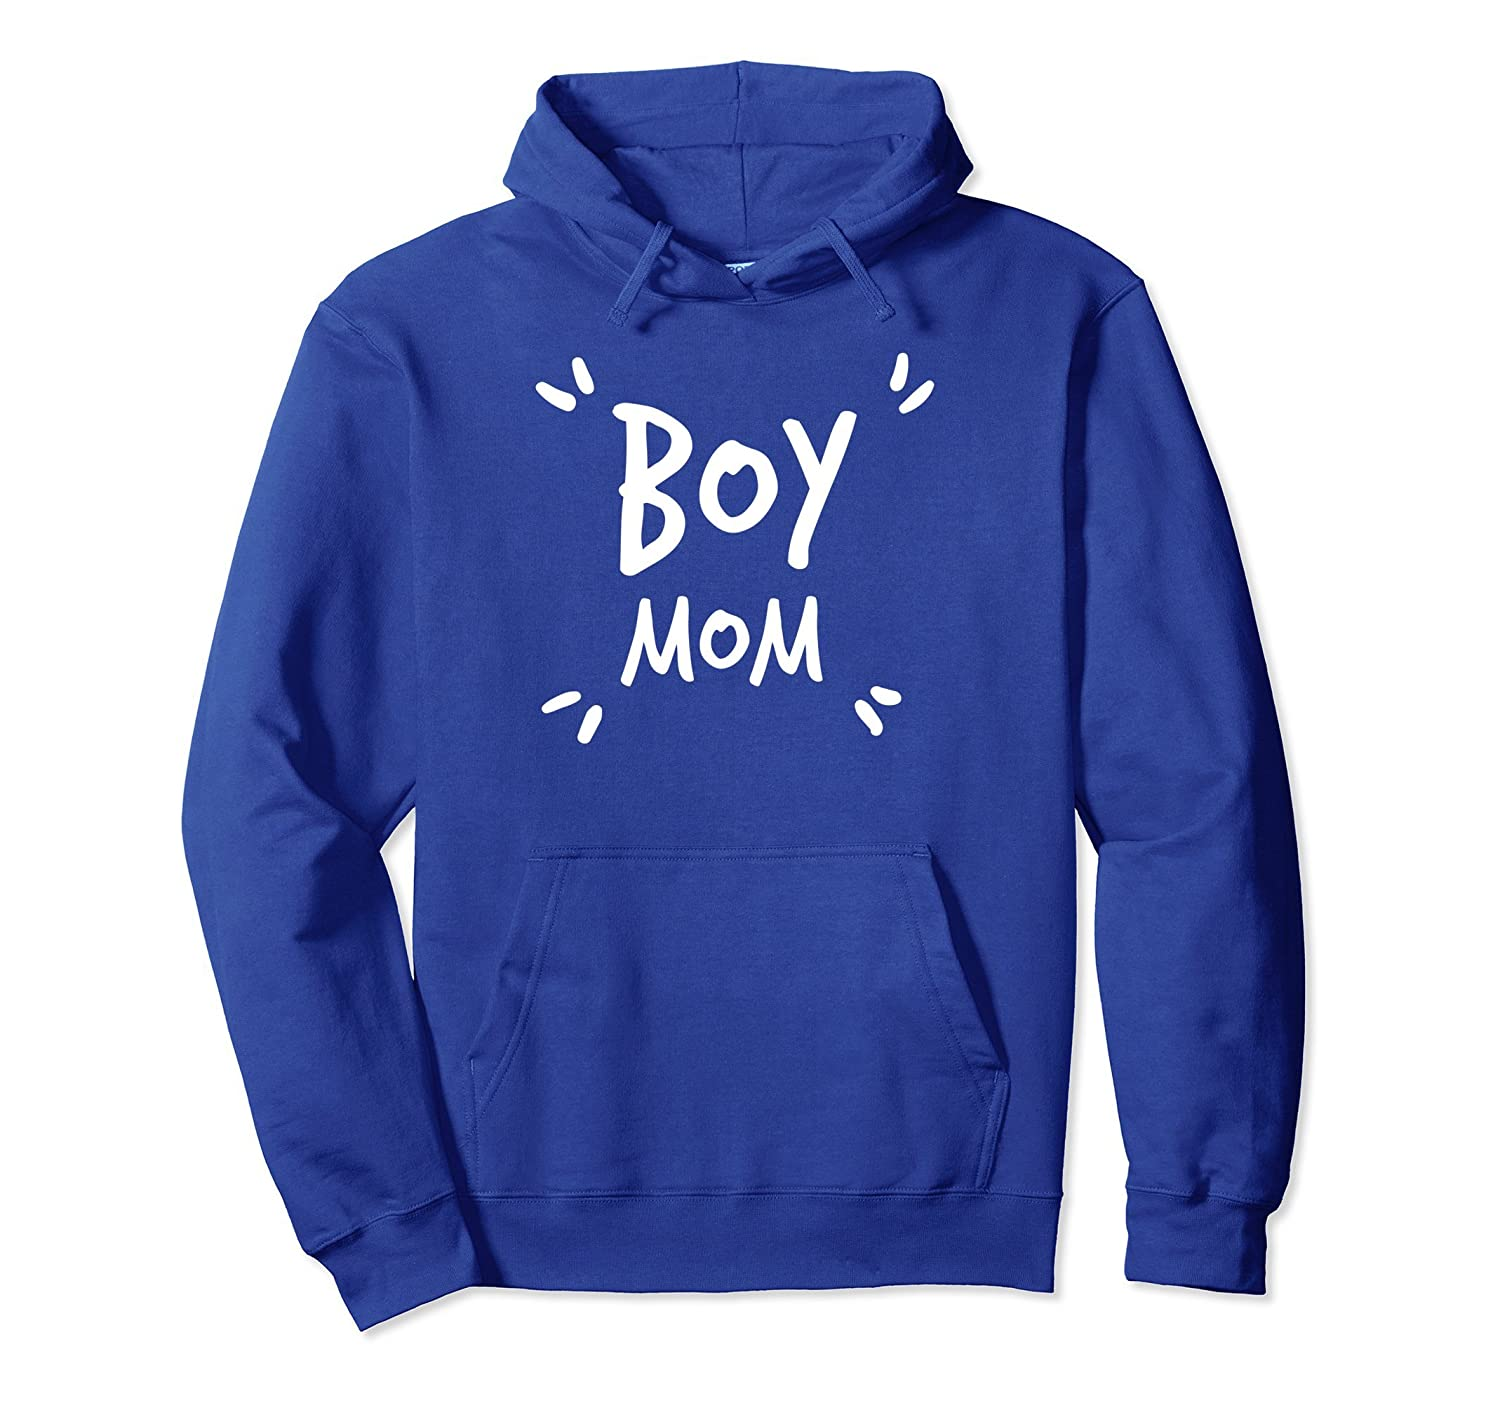 Boy Mom Shirt - Mothers Day Gift Tshirt Pullover Hoodie-TH